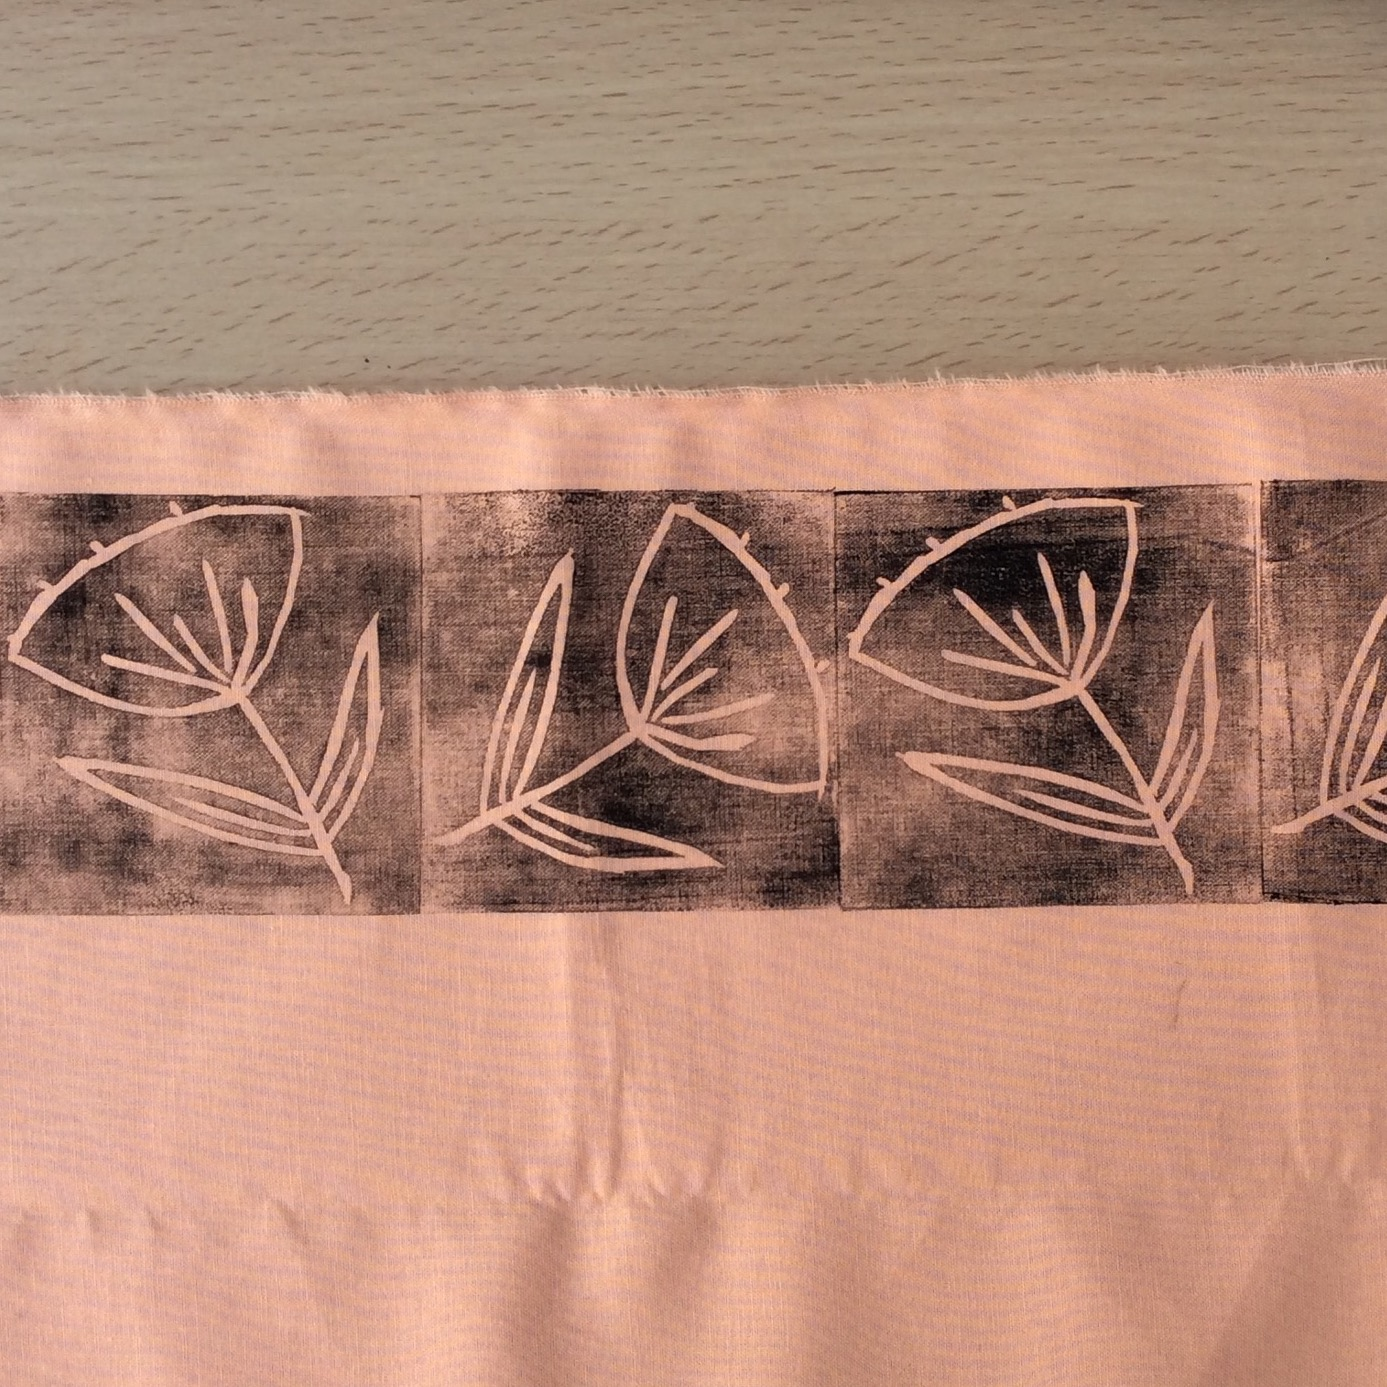 Creating a border print with the flower design